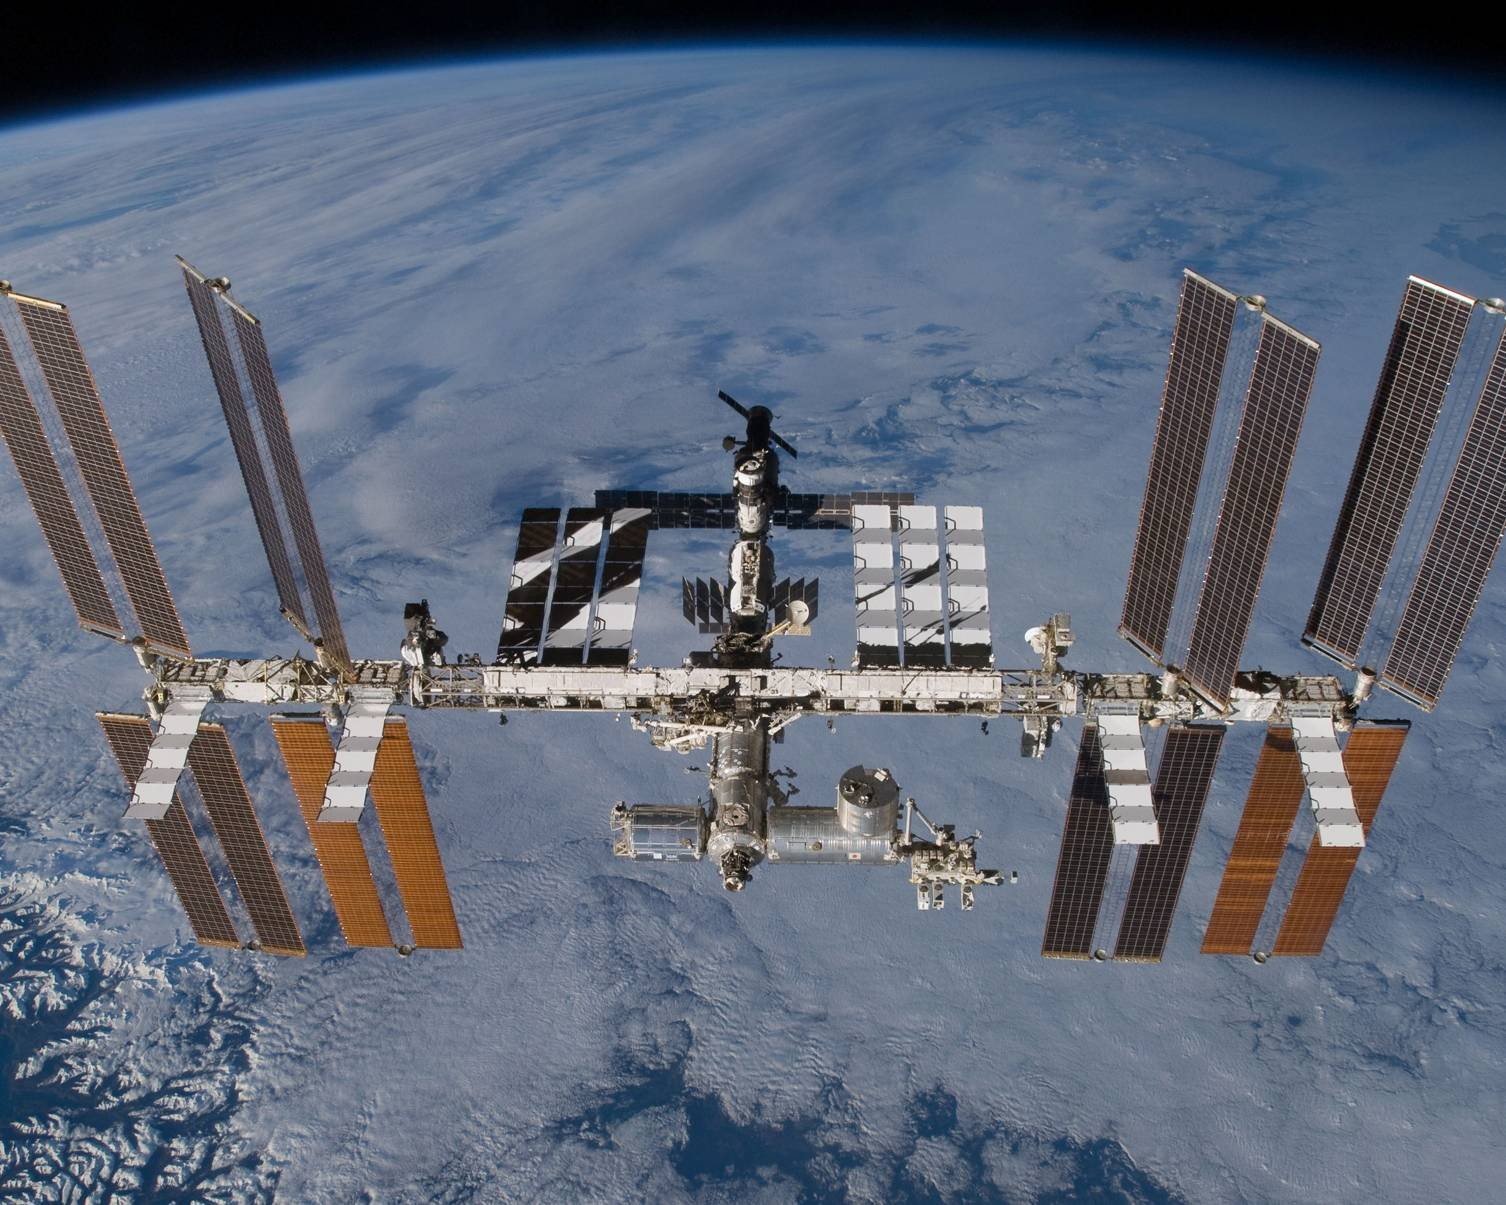 Discover the space station